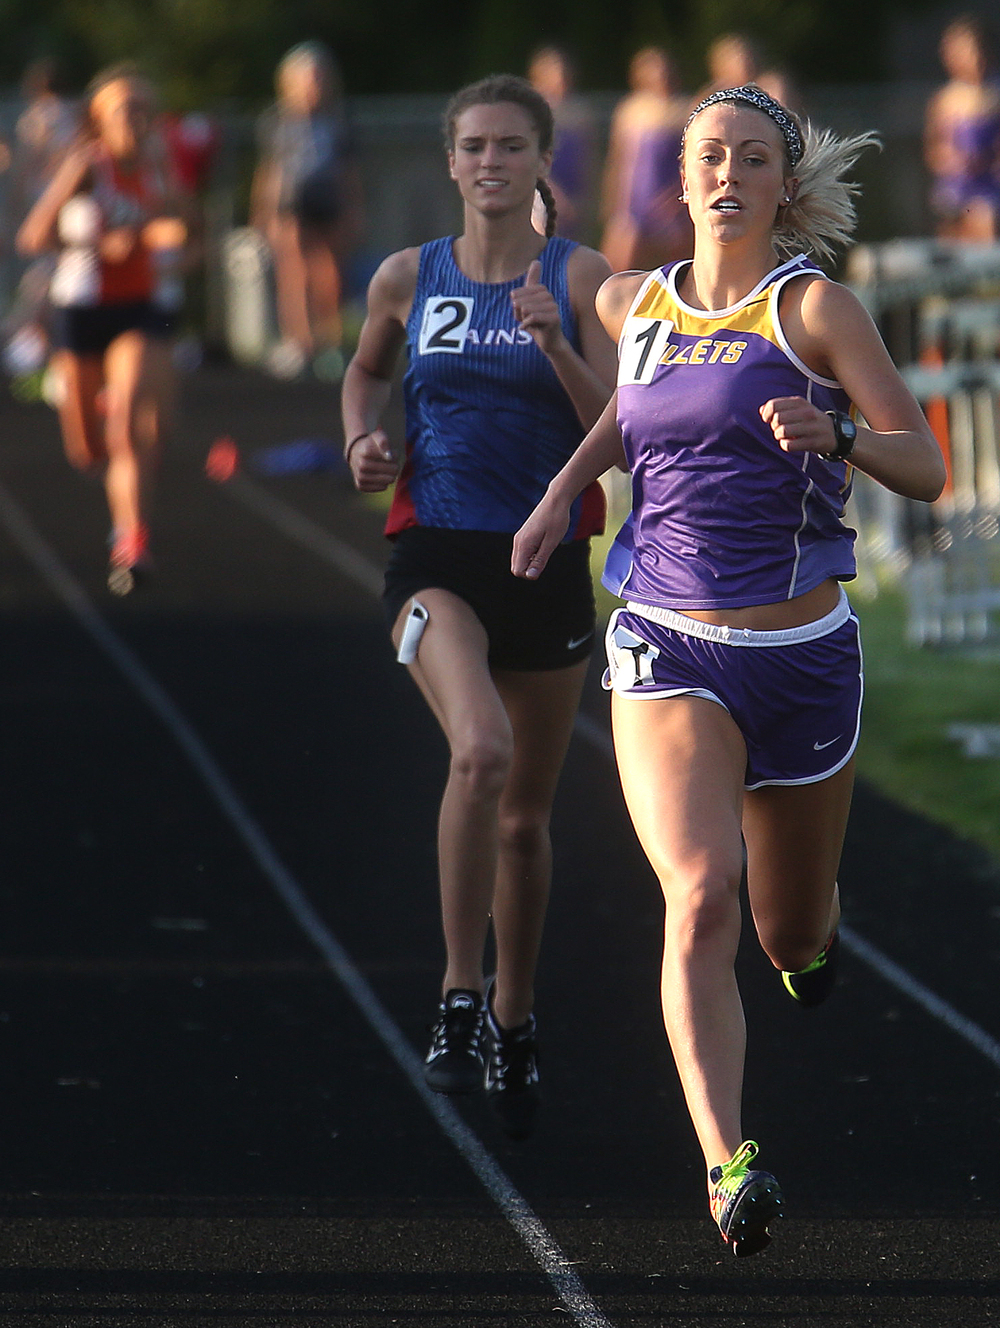 Williamsville's Abbey Galusha at front beat Pleasant Plains runner Ali Pankey behind her to win the girls 800 meter run on Friday. David Spencer/The State Journal-Register